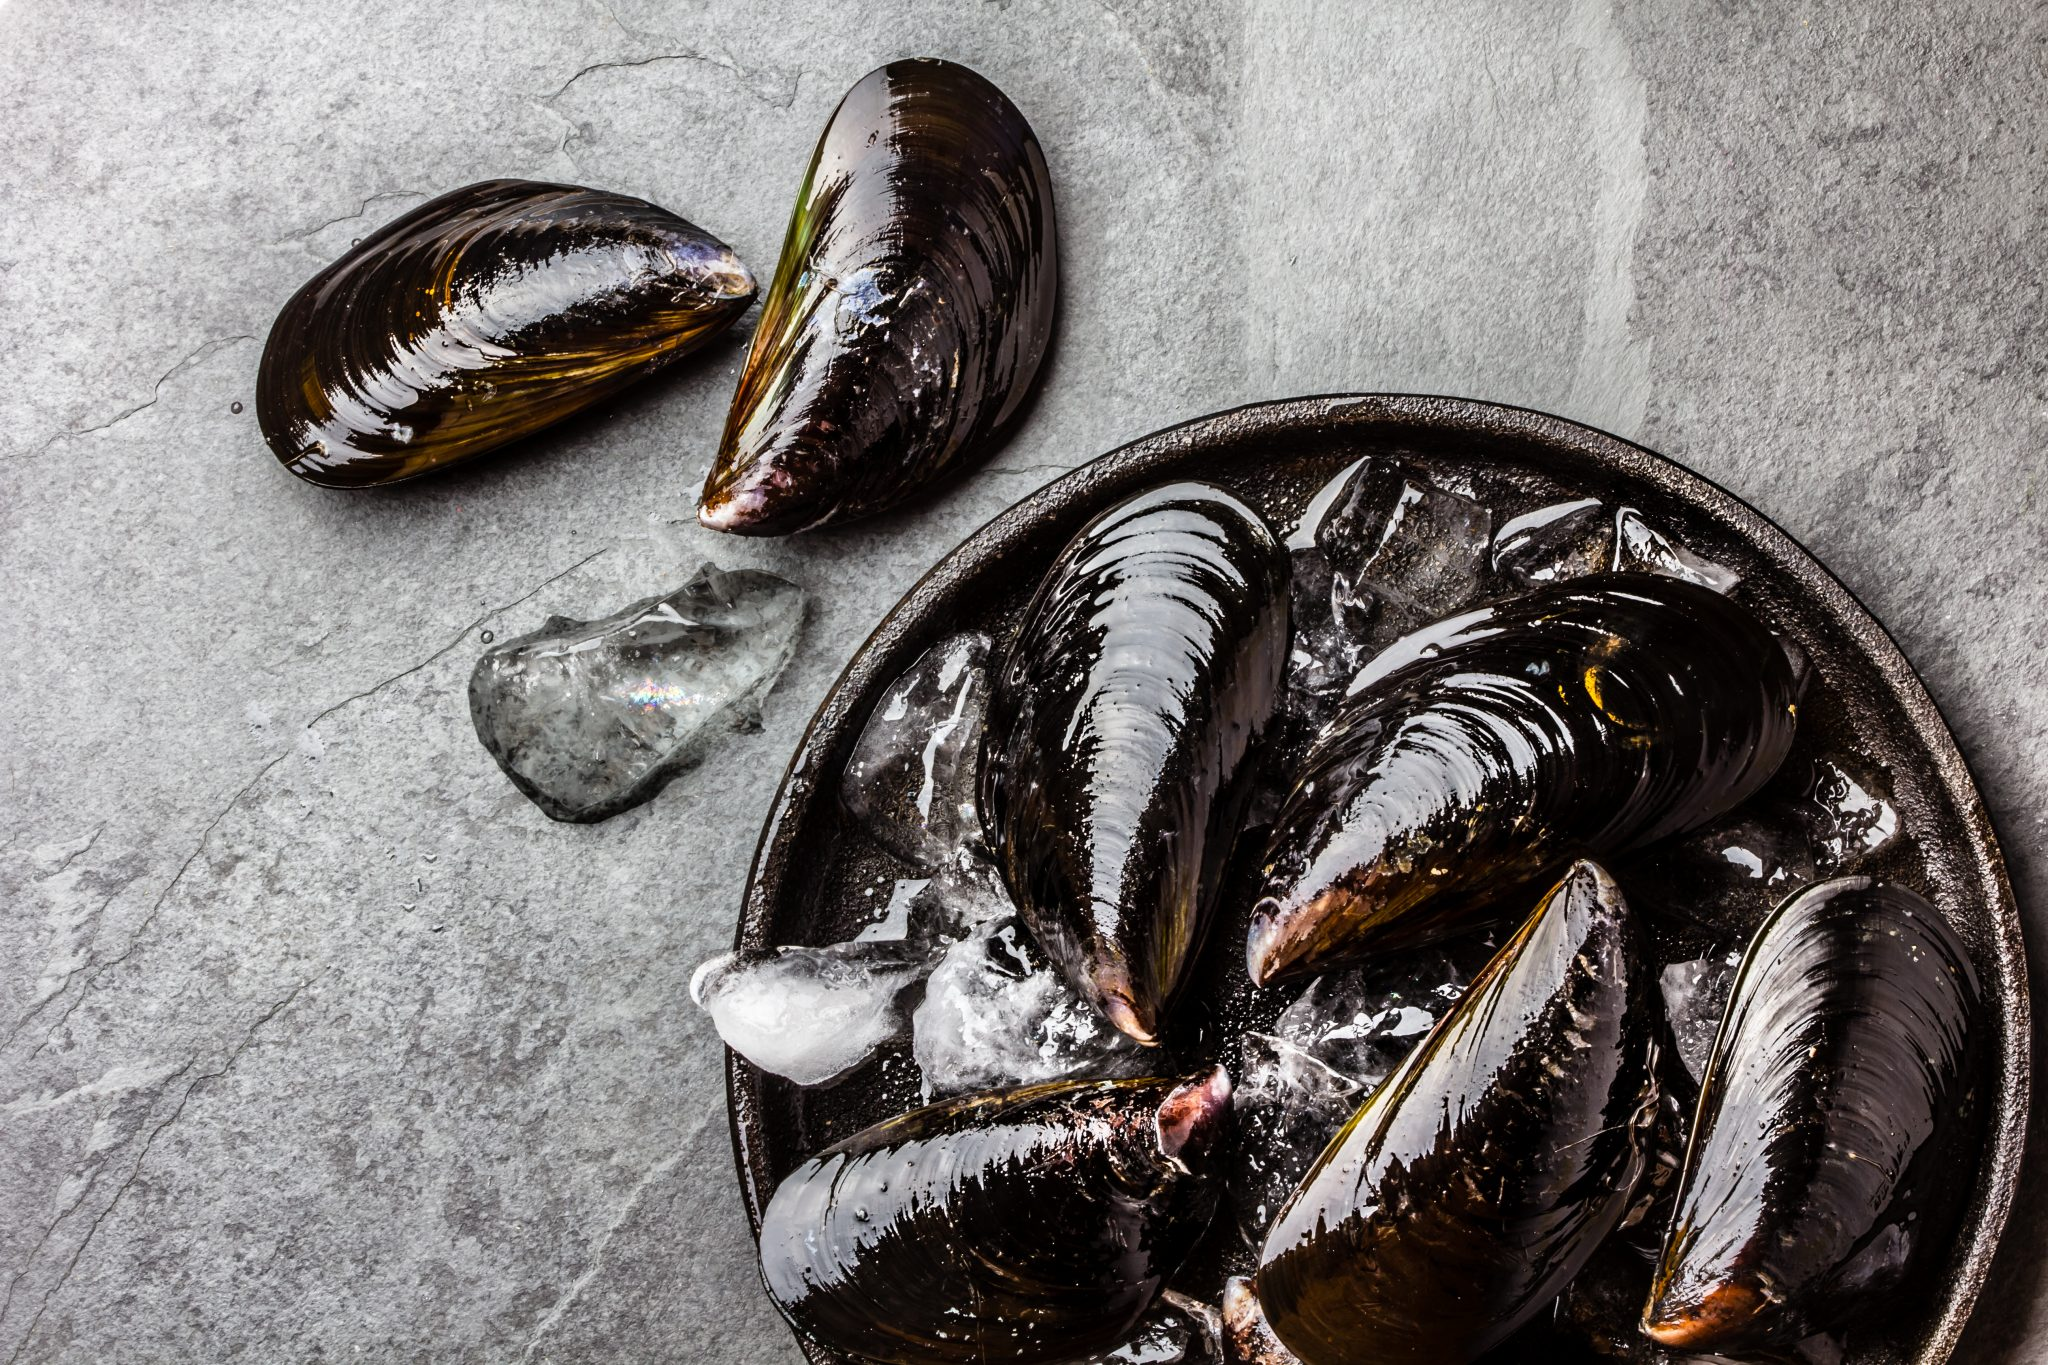 Fresh uncooked big mussels on ice. Slate background.